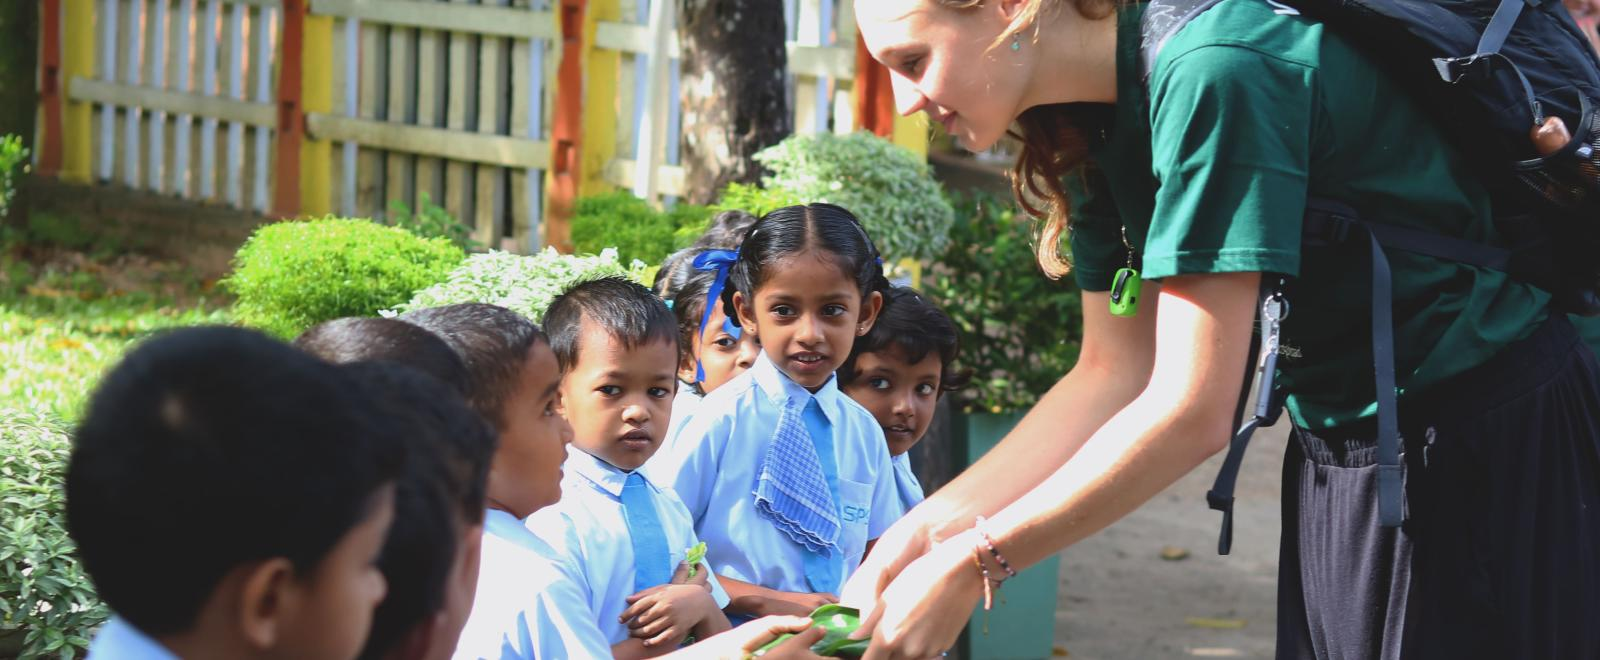 ASDAN volunteer recieves a gift from the schoolchildren at her placement in Sri Lanka.